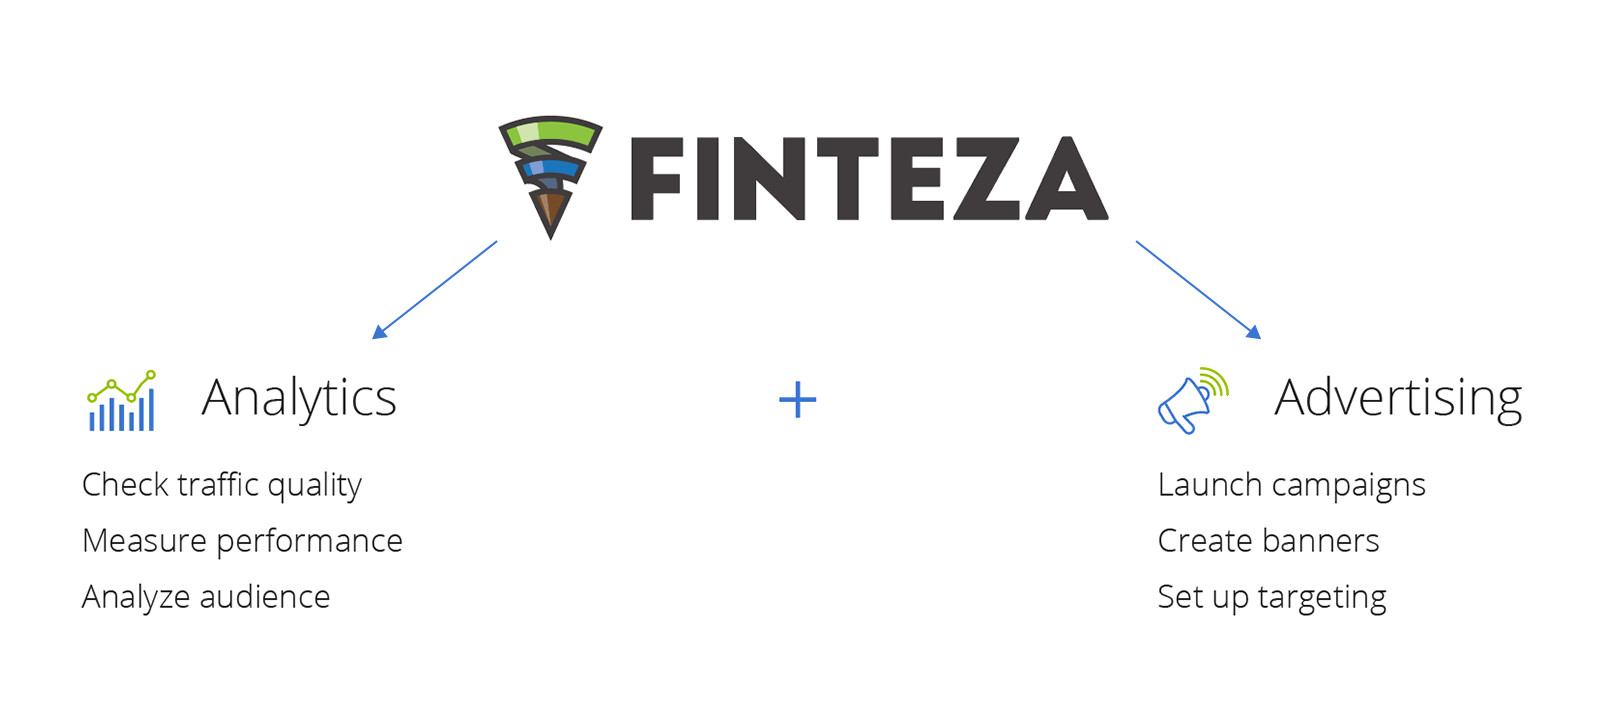 Finteza is an analytical service + advertising engine